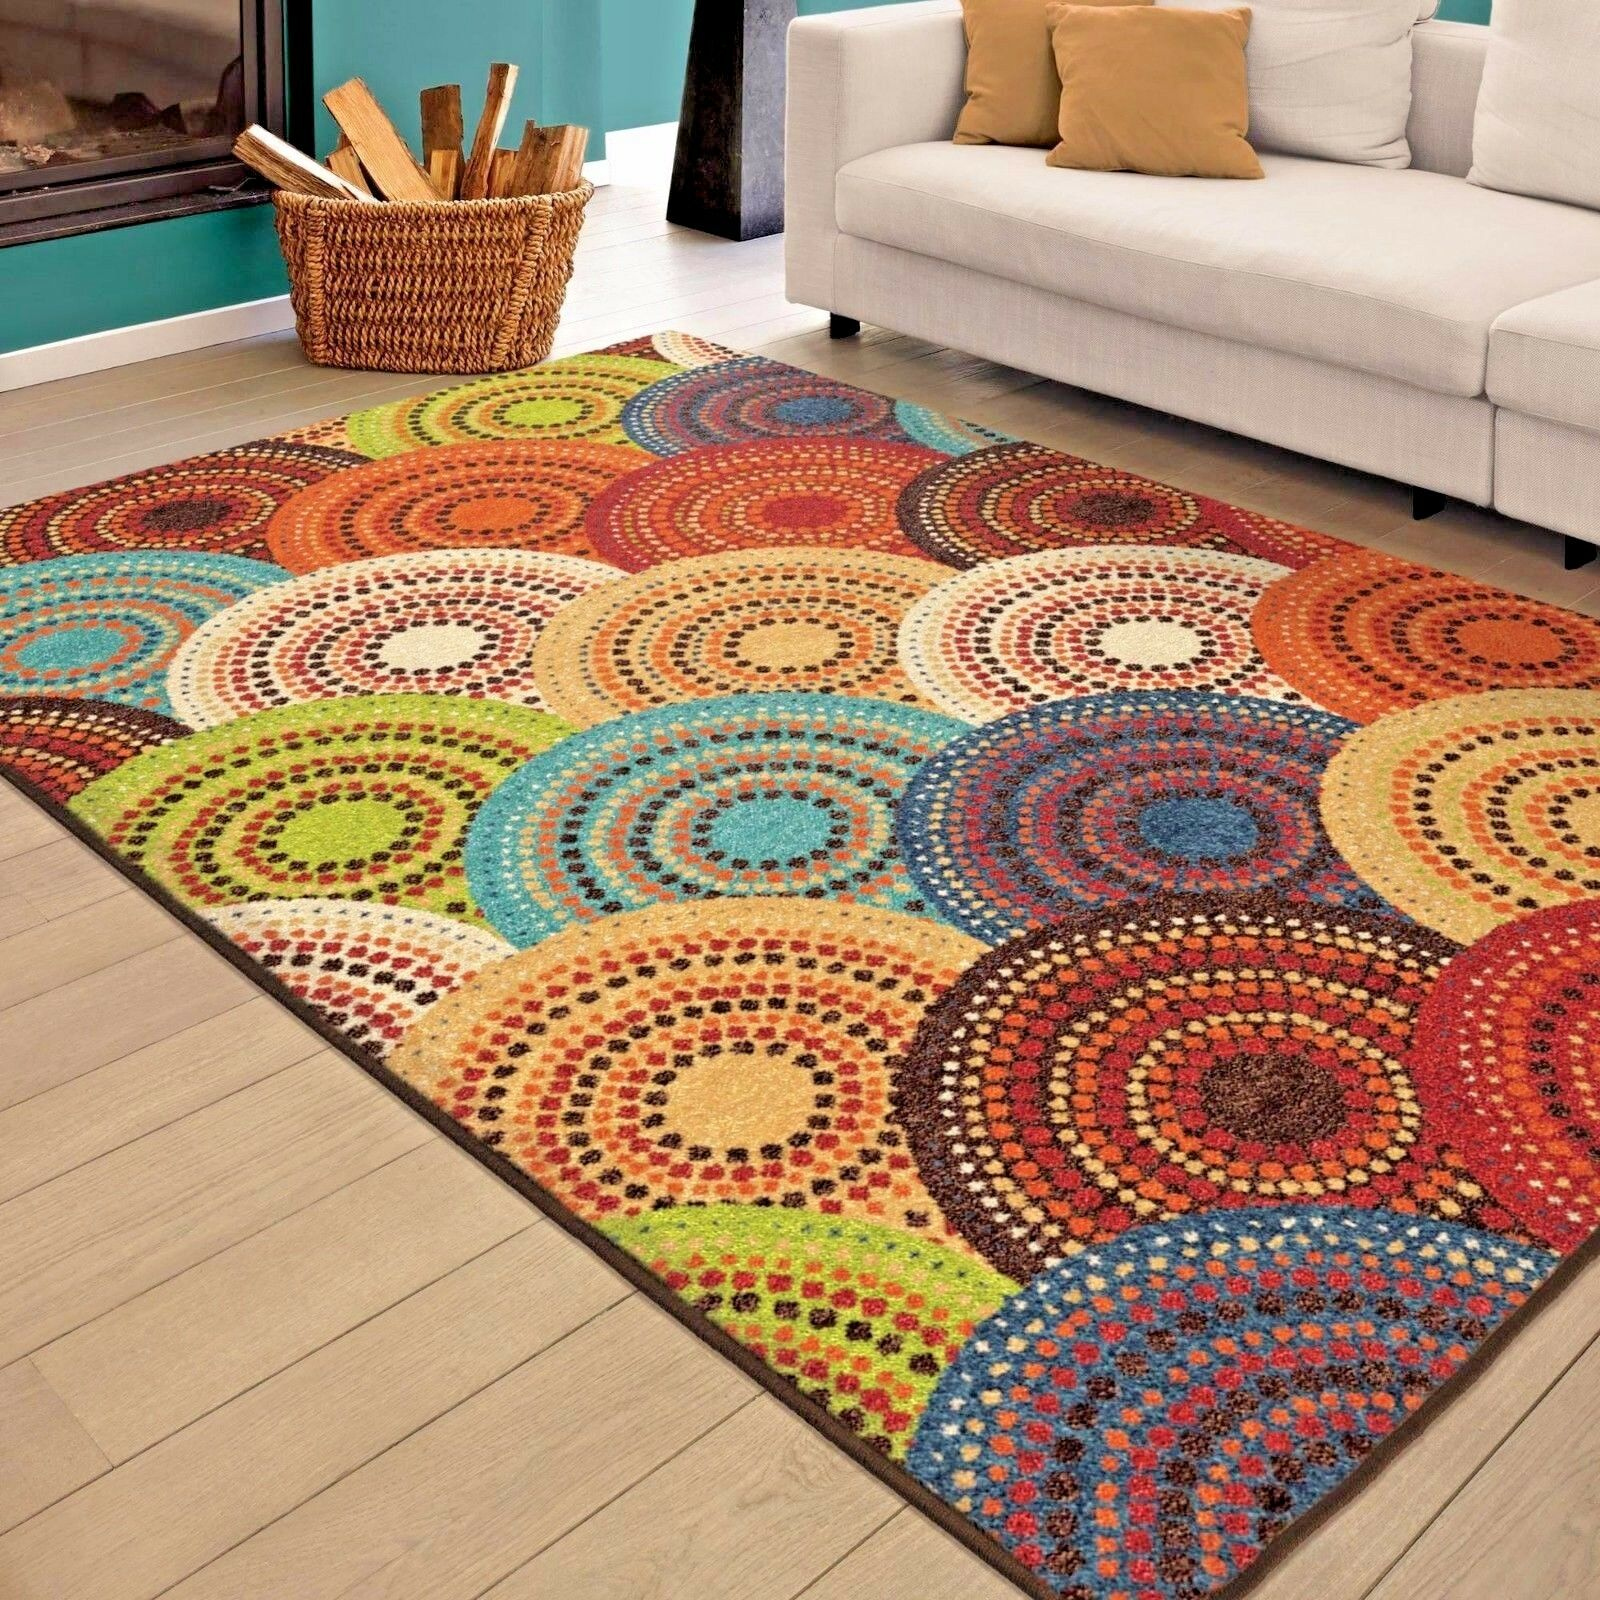 Rugs area rugs carpets 8x10 rug floor modern cute colorful - Living room area rugs ...